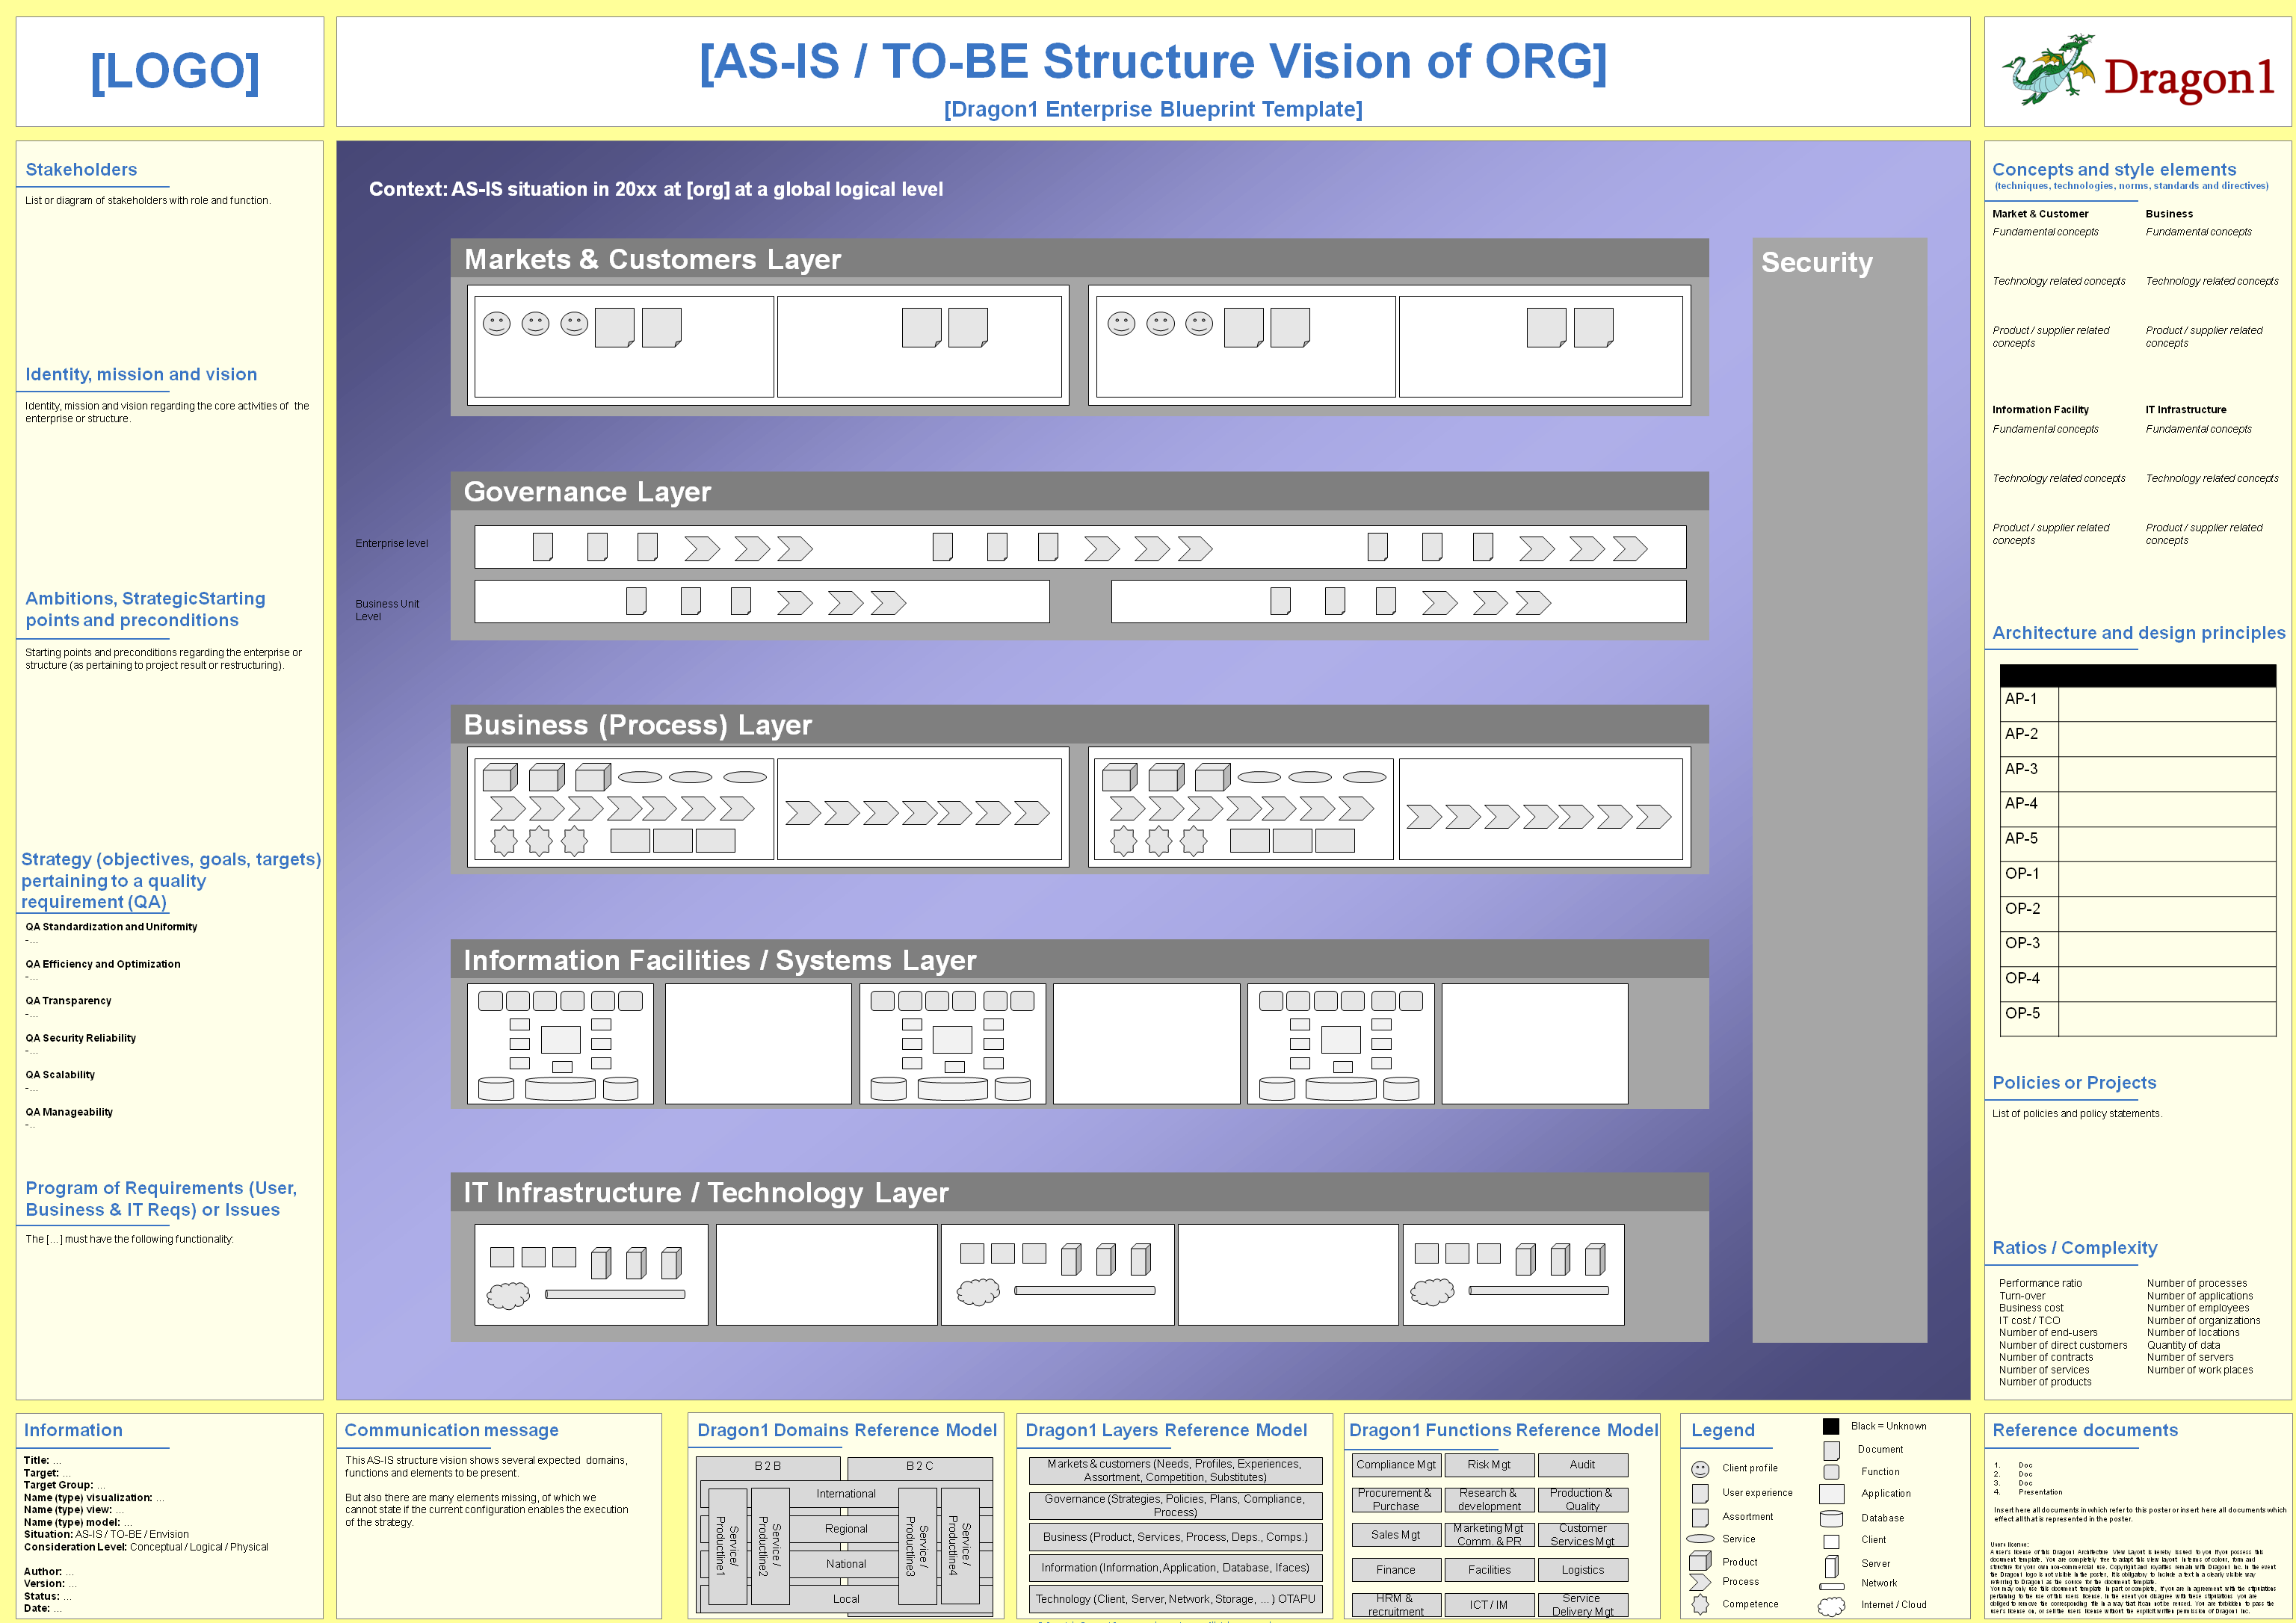 Project blueprint template acurnamedia enterprise architecture blueprint diagram template dragon1 malvernweather Image collections